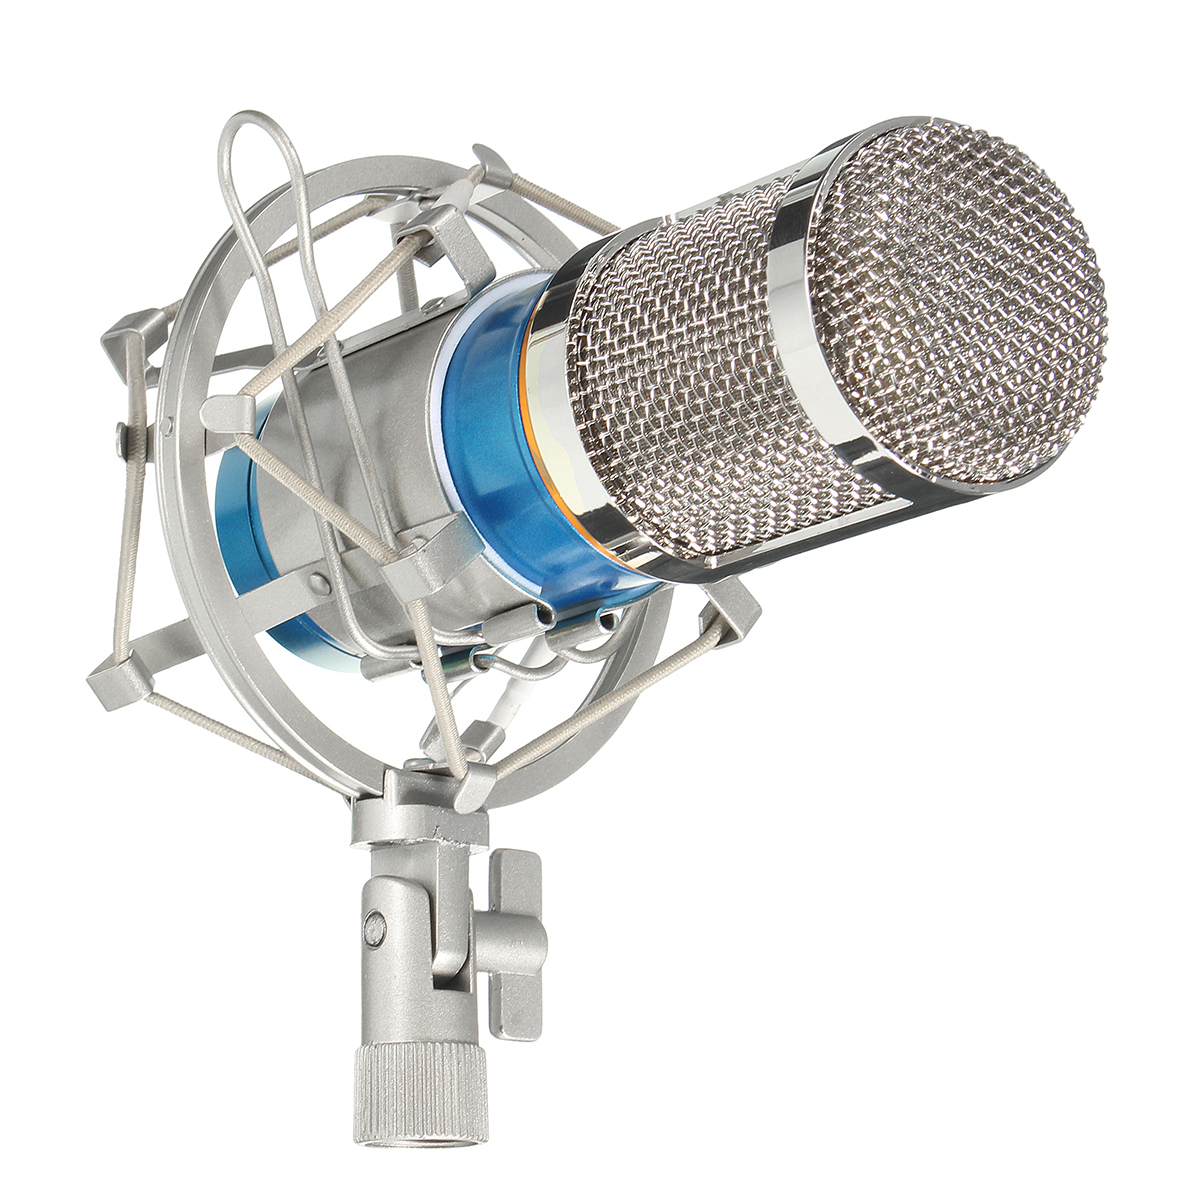 BM800 Pro Condenser Microphone Kit, Studio Recording Microphone with Shock Mount Holder, Audio cable, BOP cover